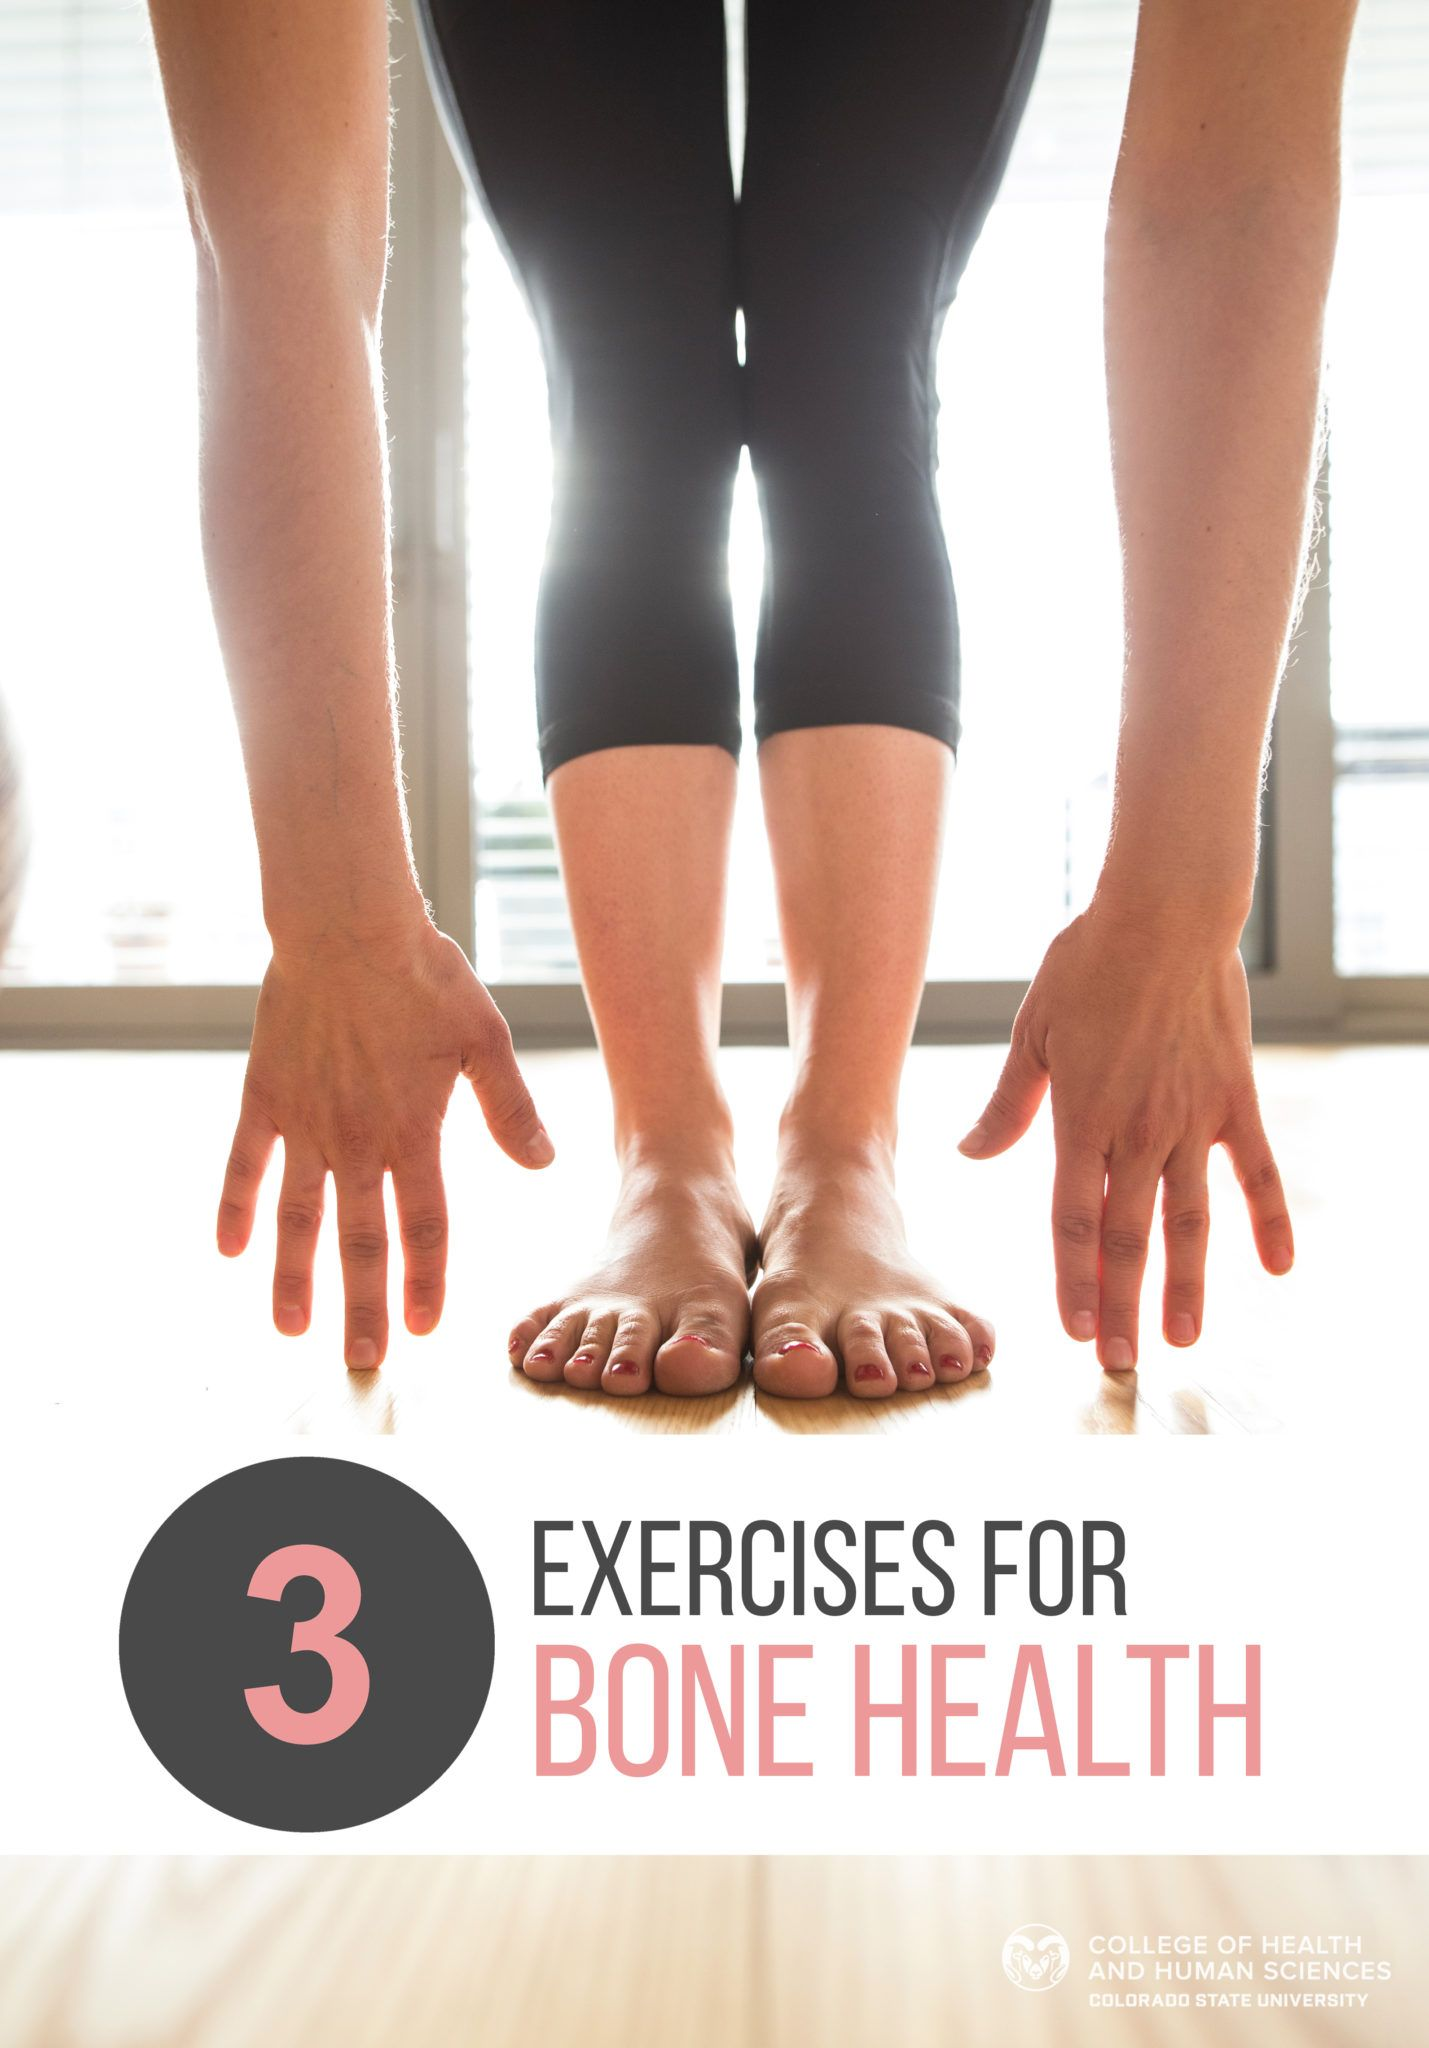 25+ Heel drop exercise for osteoporosis information